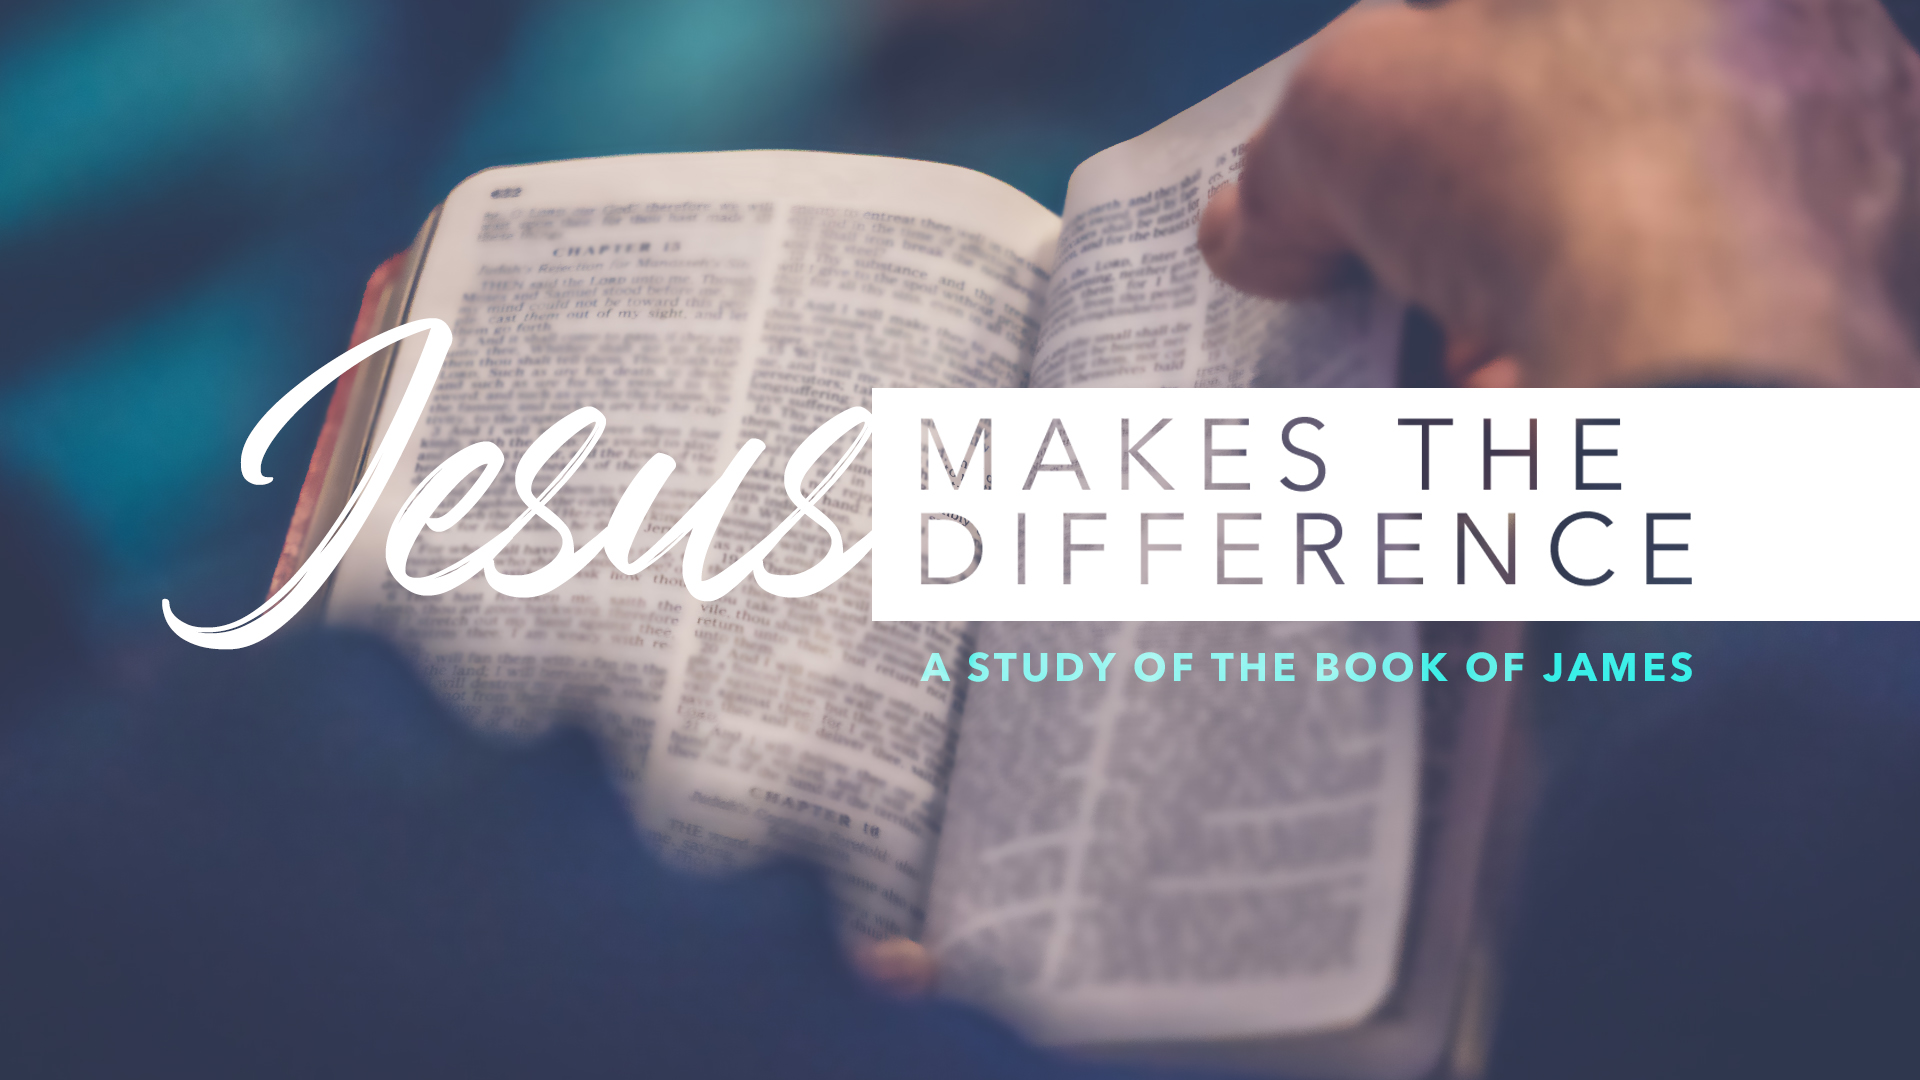 How I Relate To Others - Jesus Makes the Difference